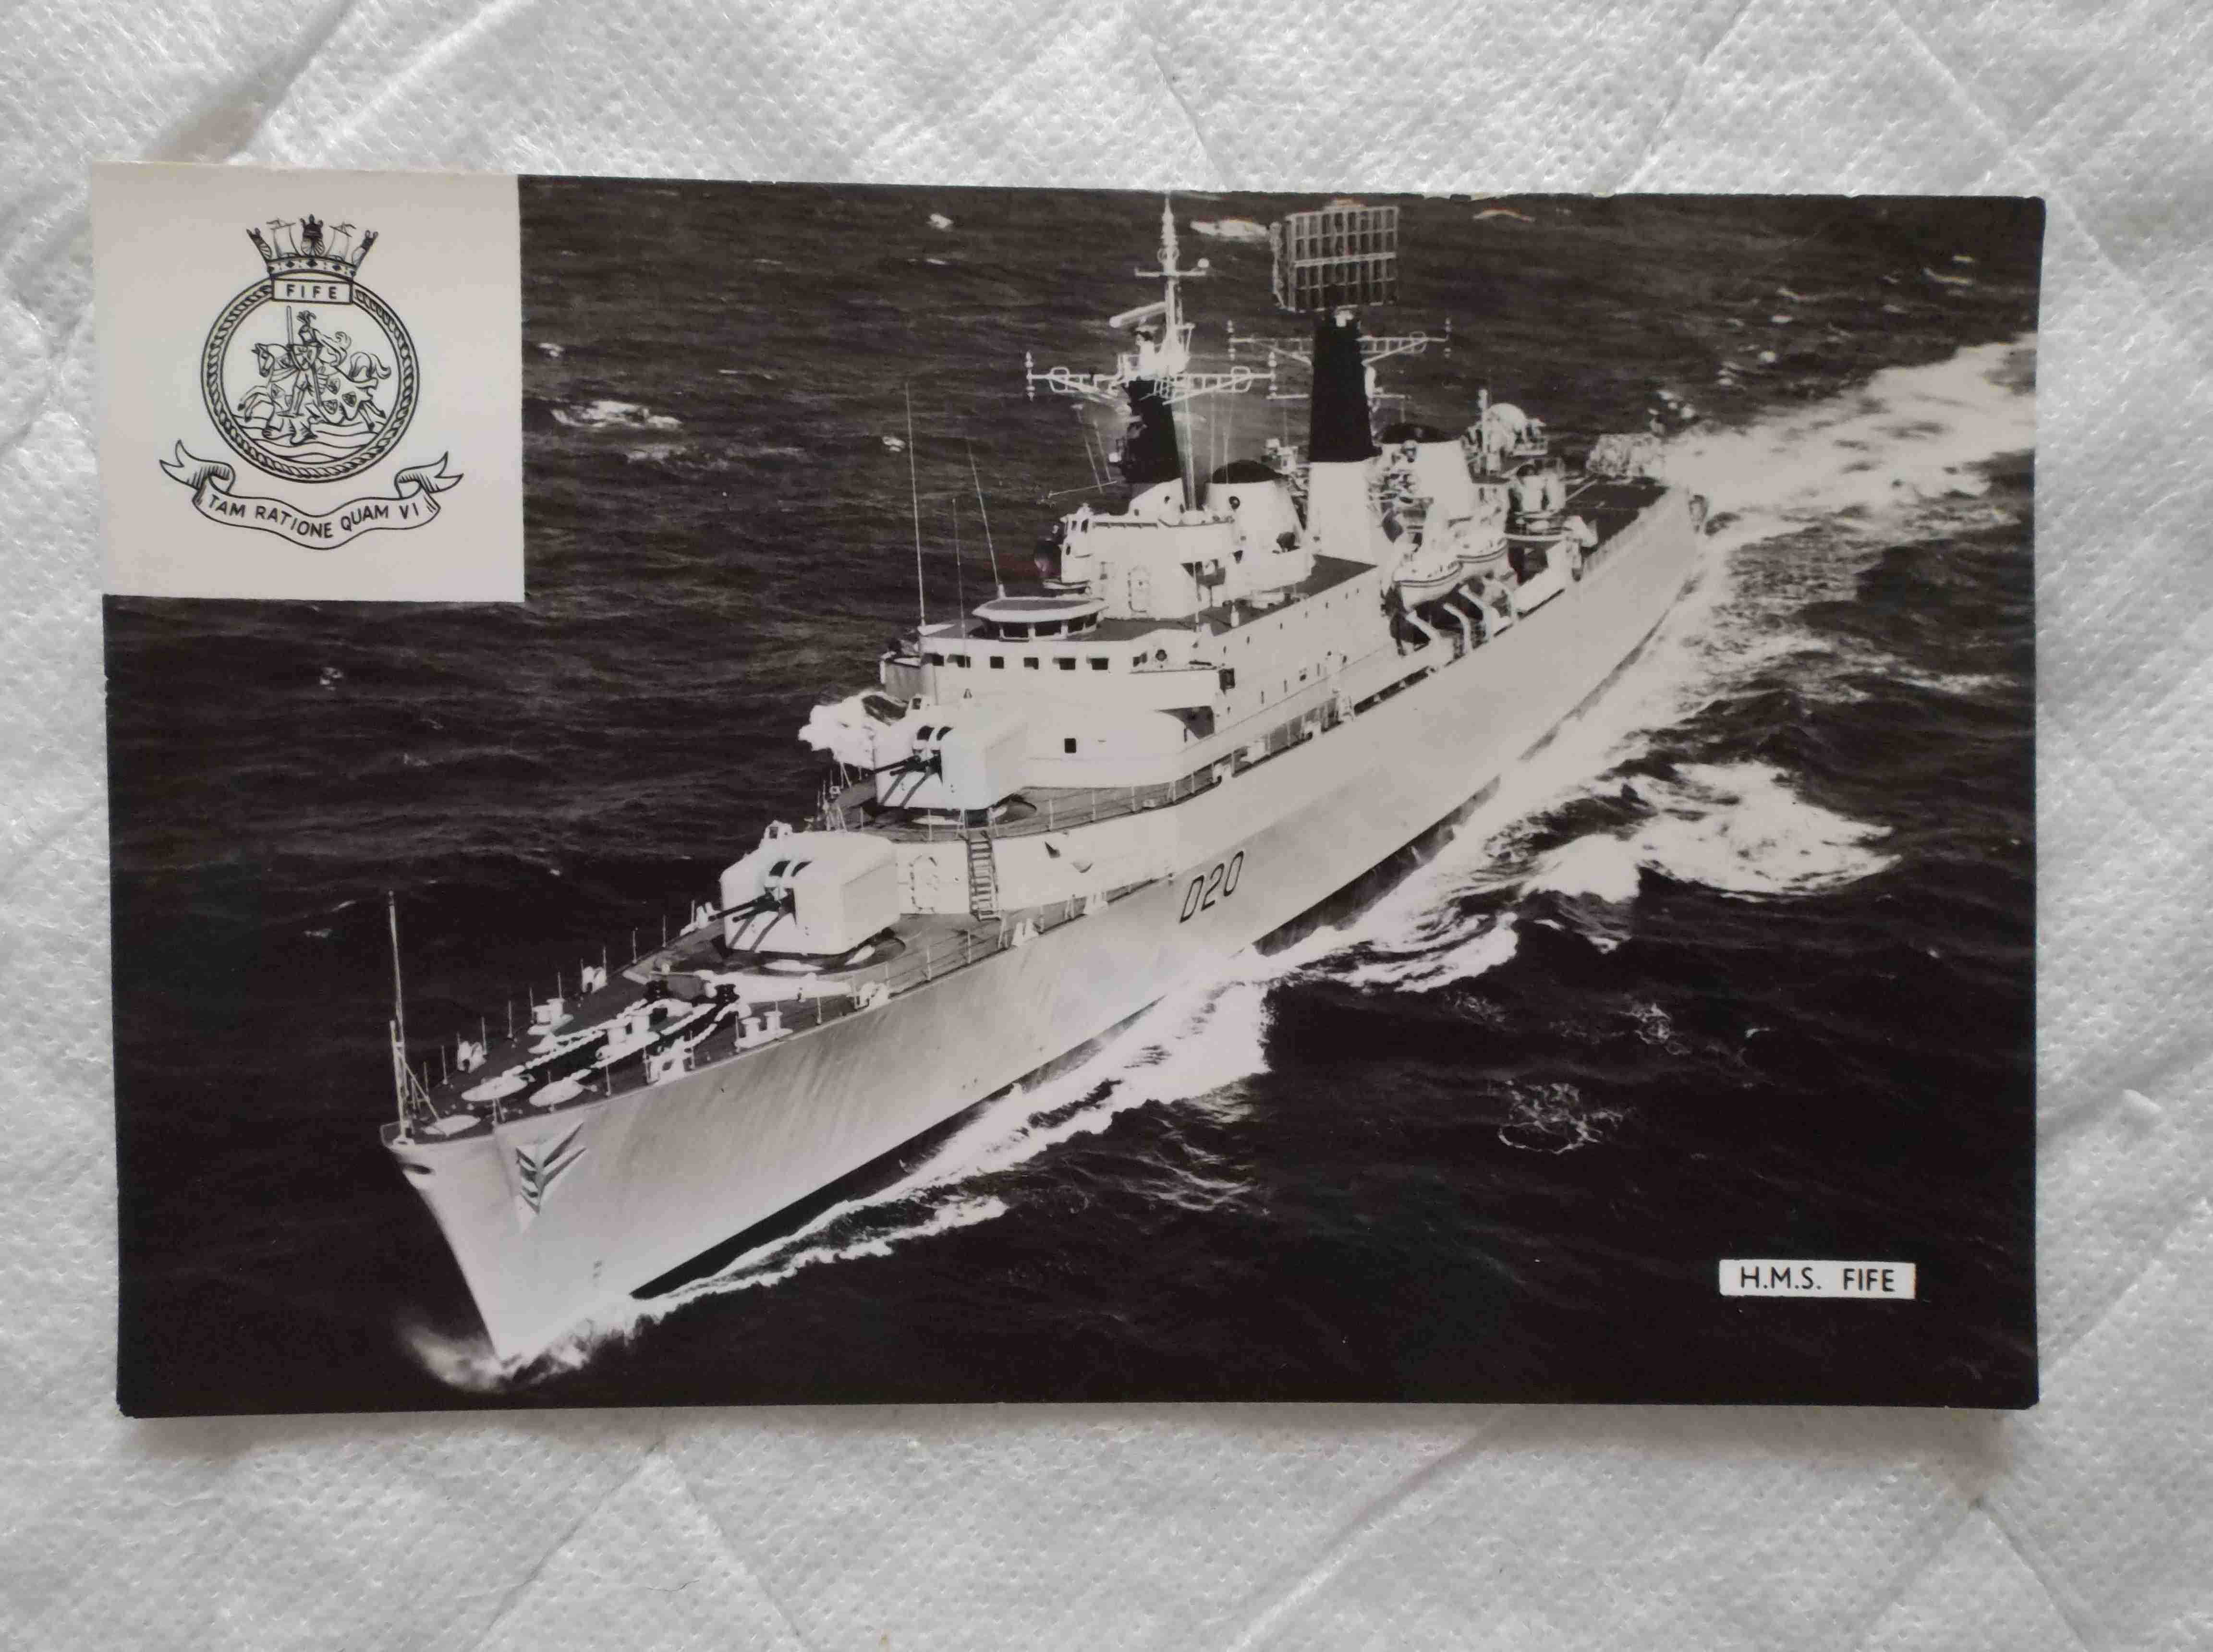 POSTCARD SIZE PHOTOGRAPH  OF THE ROYAL NAVAL VESSEL HMS FIFE